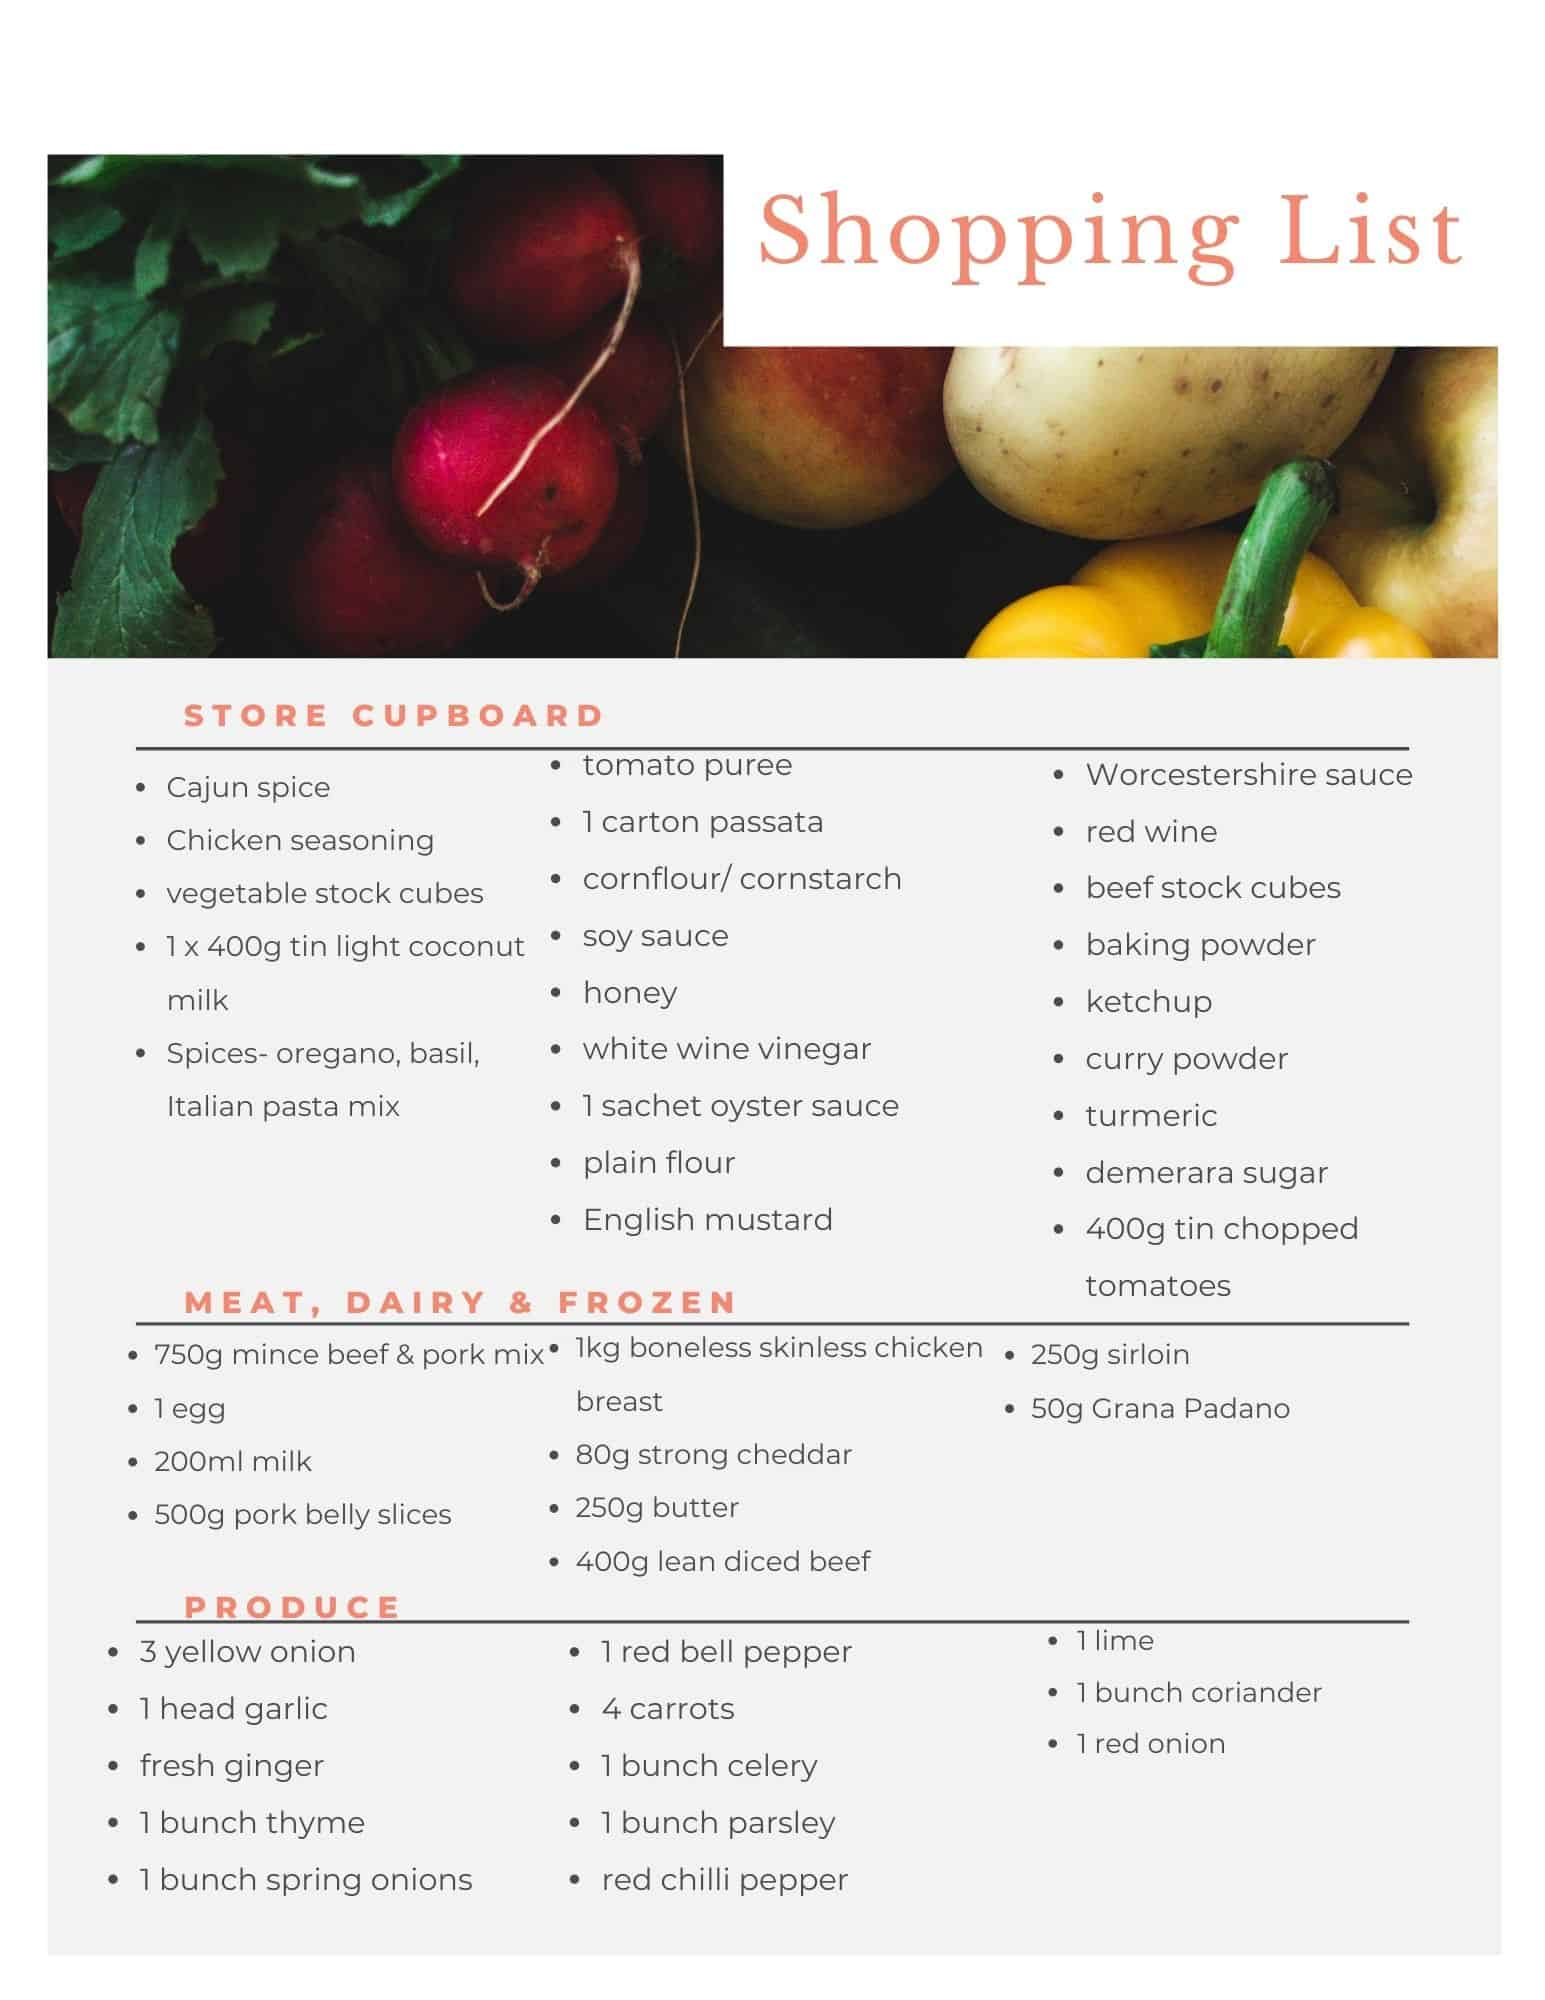 Aldi meal plan grocery list.